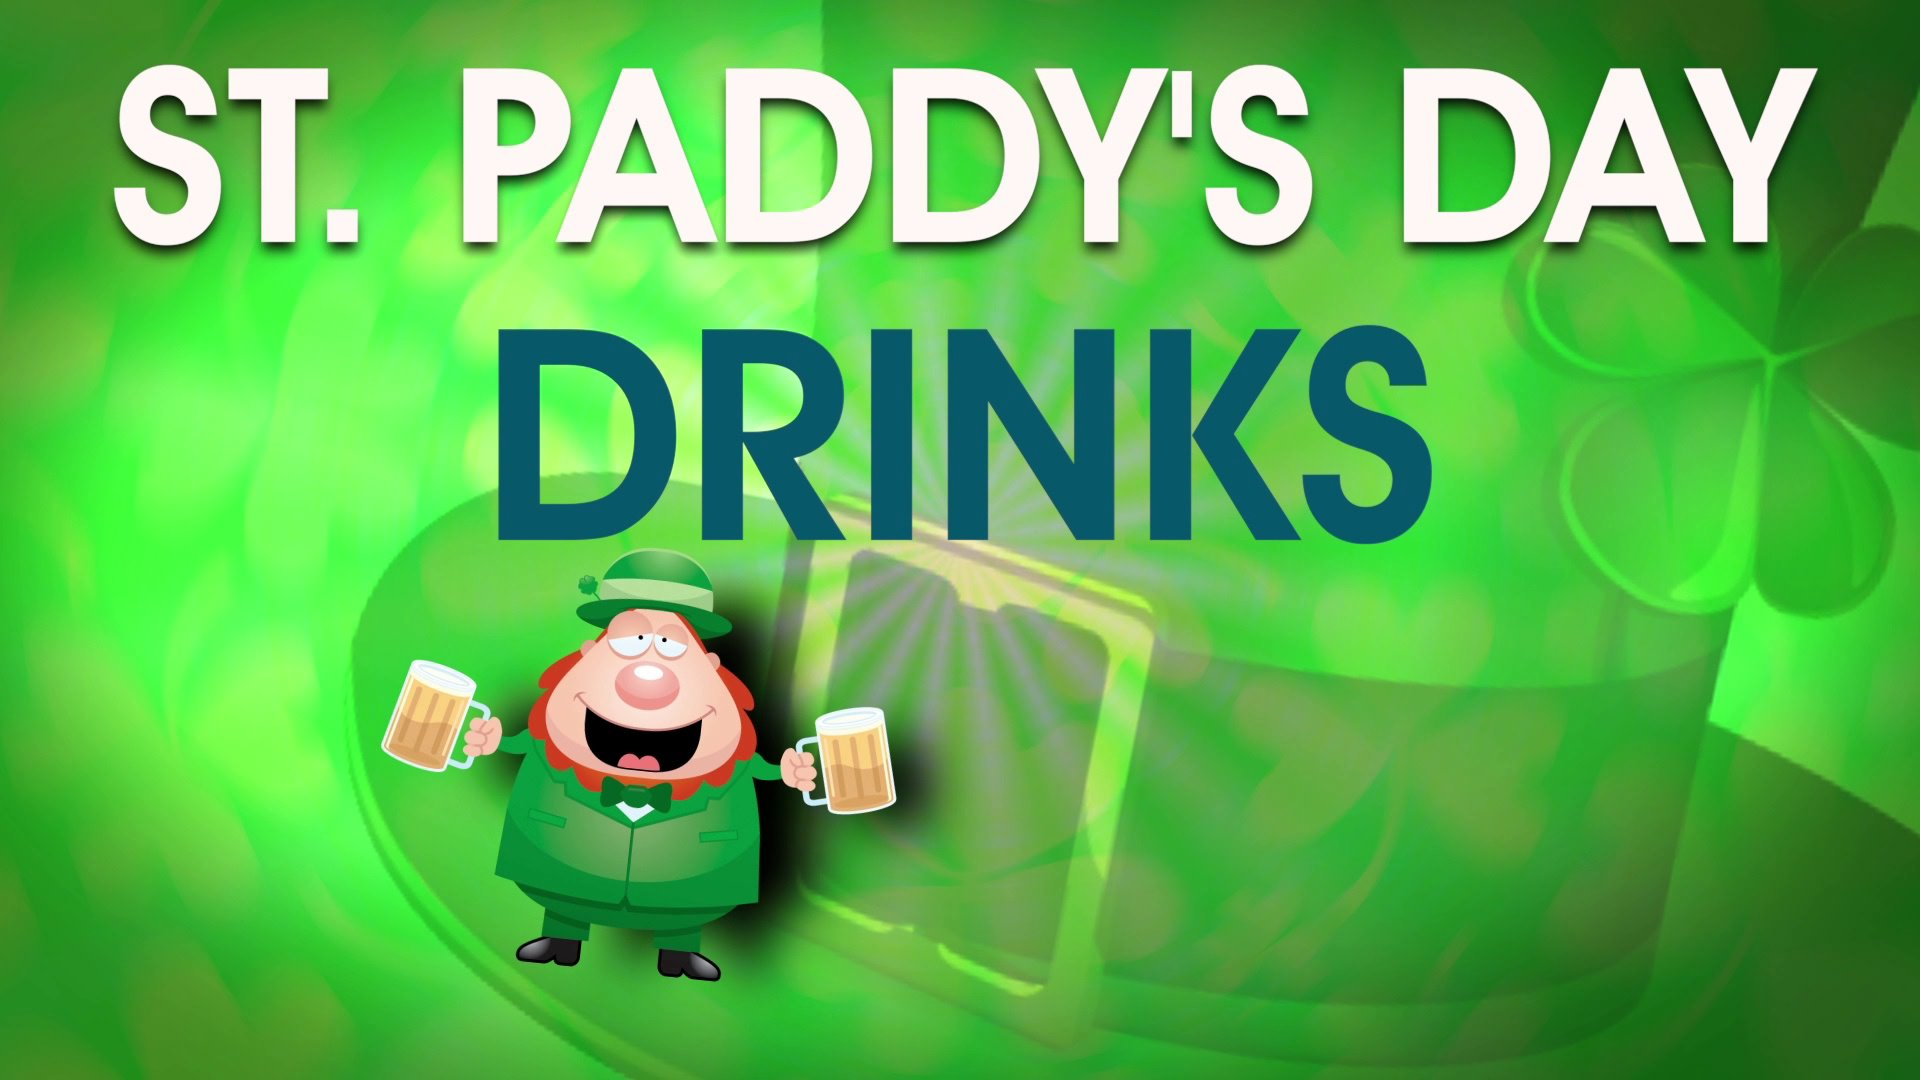 The Best St. Paddy's Day Drinks